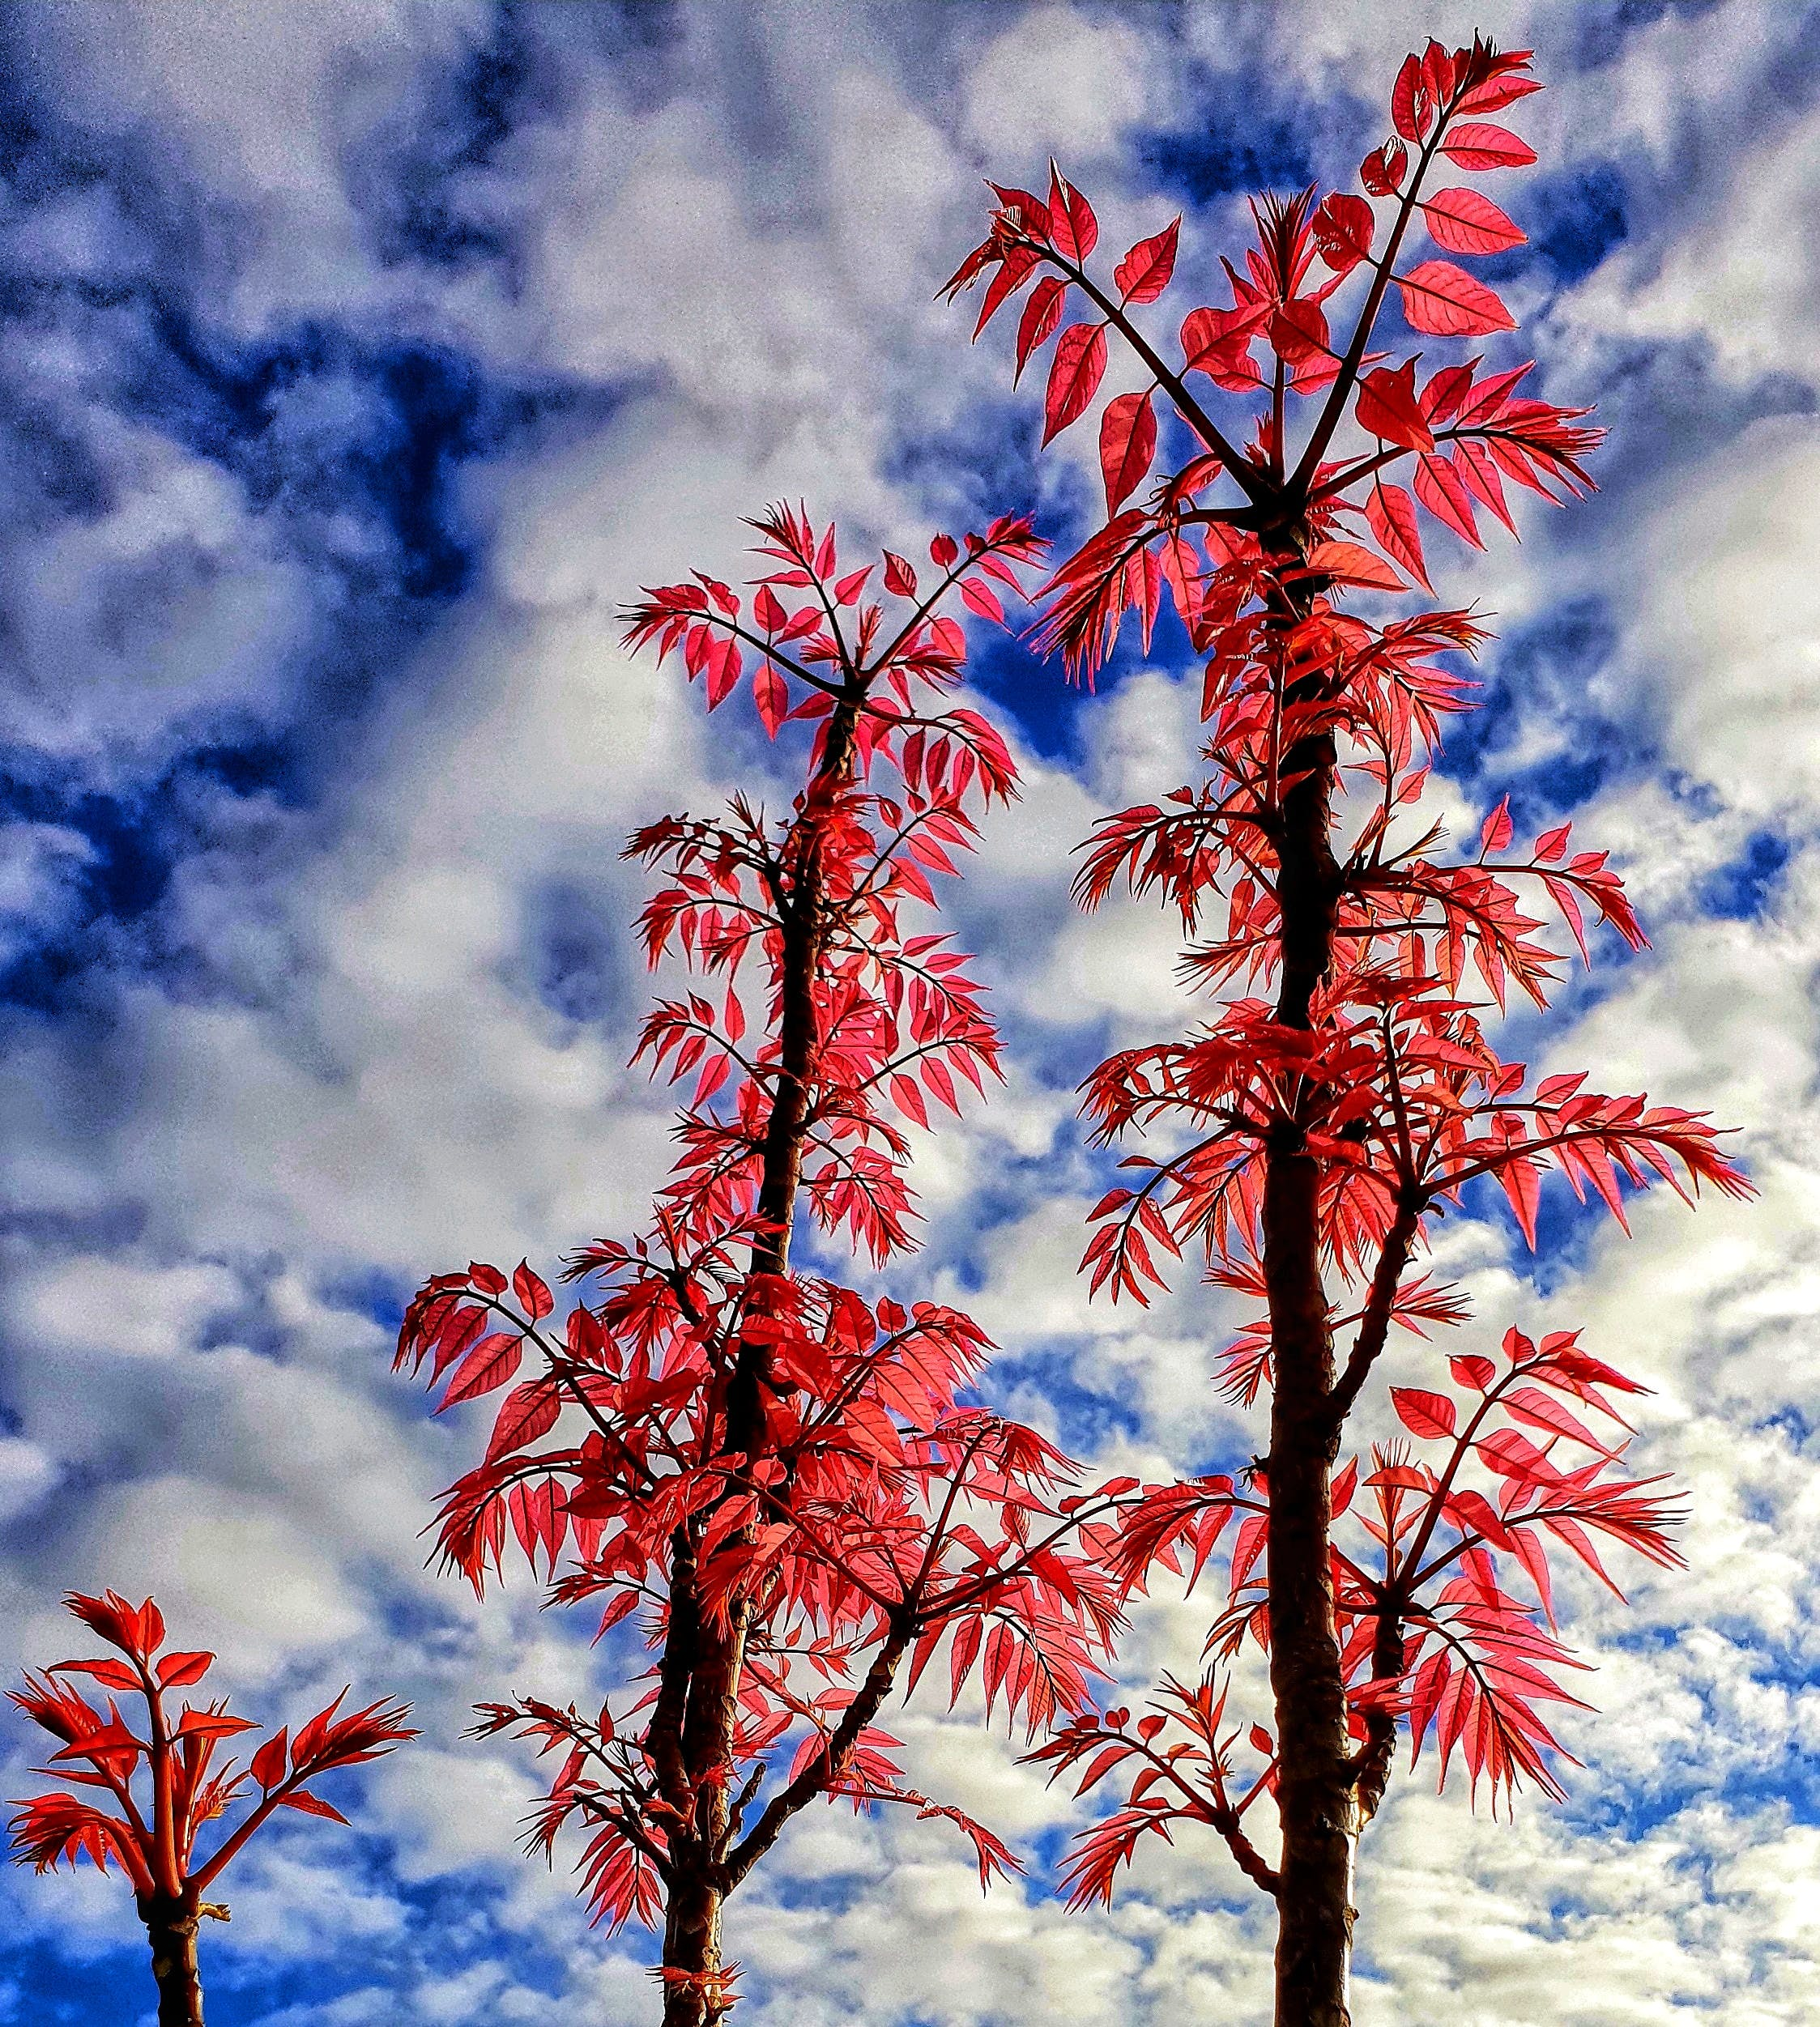 Free stock photo of cloudy sky, red foliage, red leaves, red. blue and white